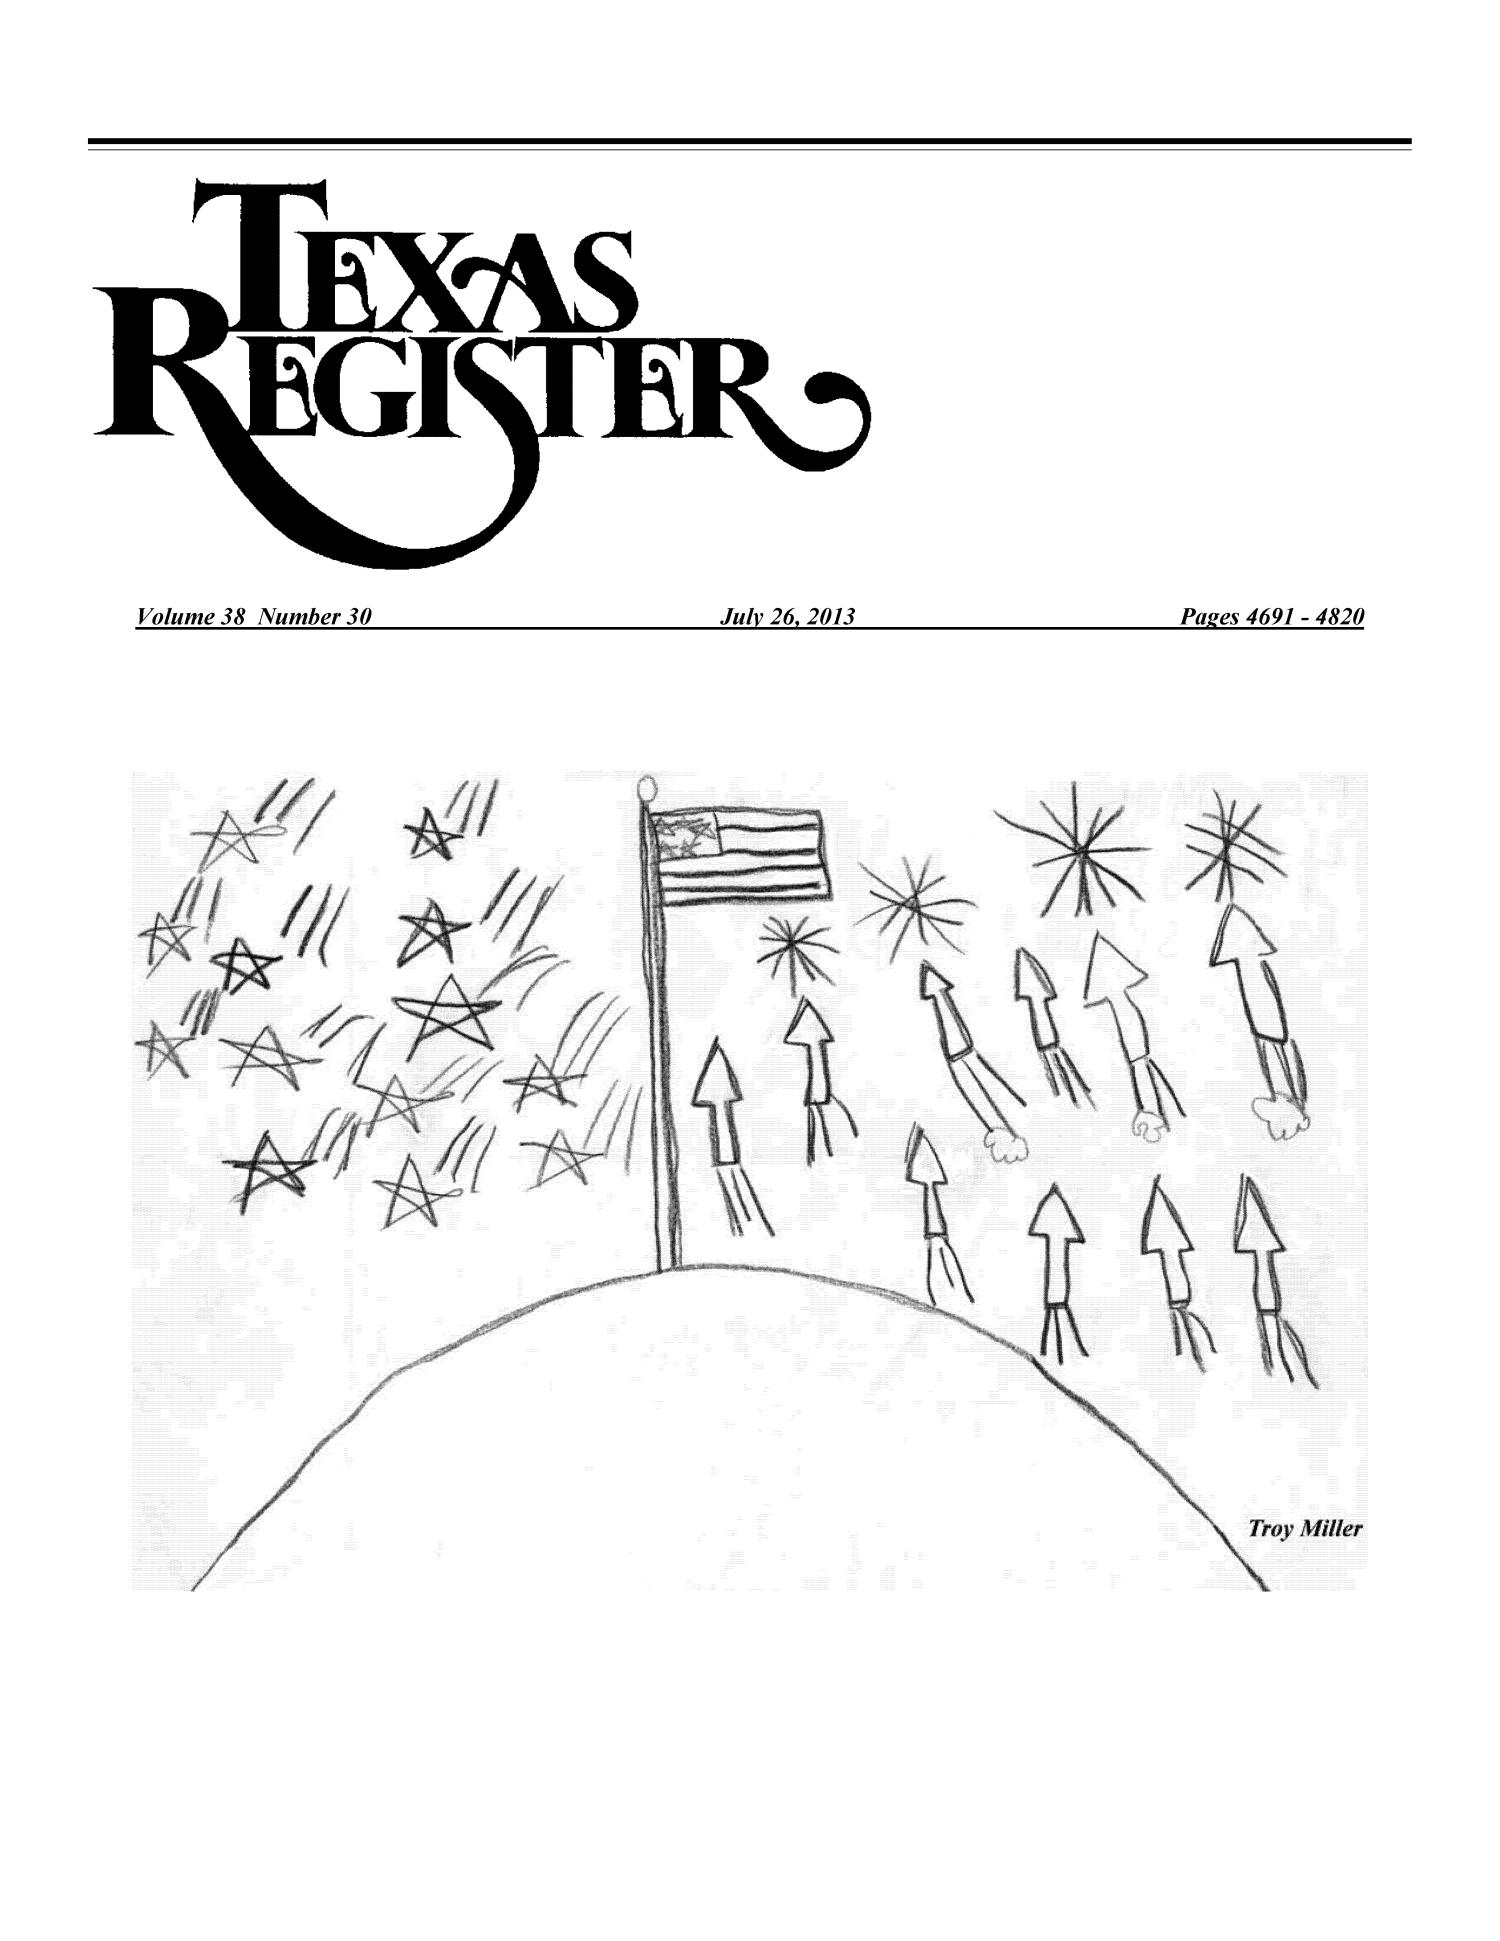 Texas Register, Volume 38, Number 30, Pages 4691-4820, July 26, 2013                                                                                                      Title Page